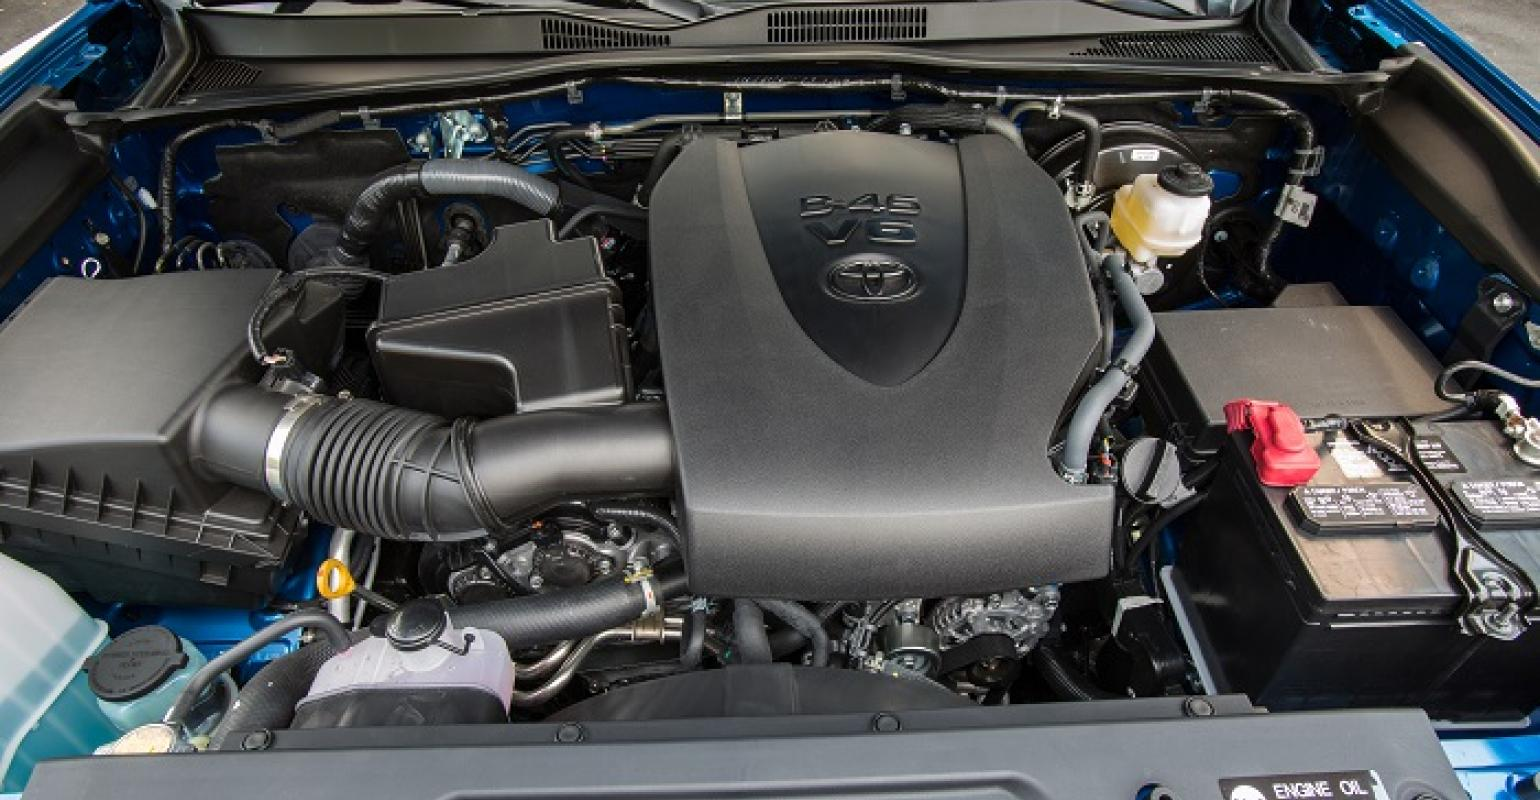 hight resolution of toyota advances d4s with self cleaning feature on tacoma